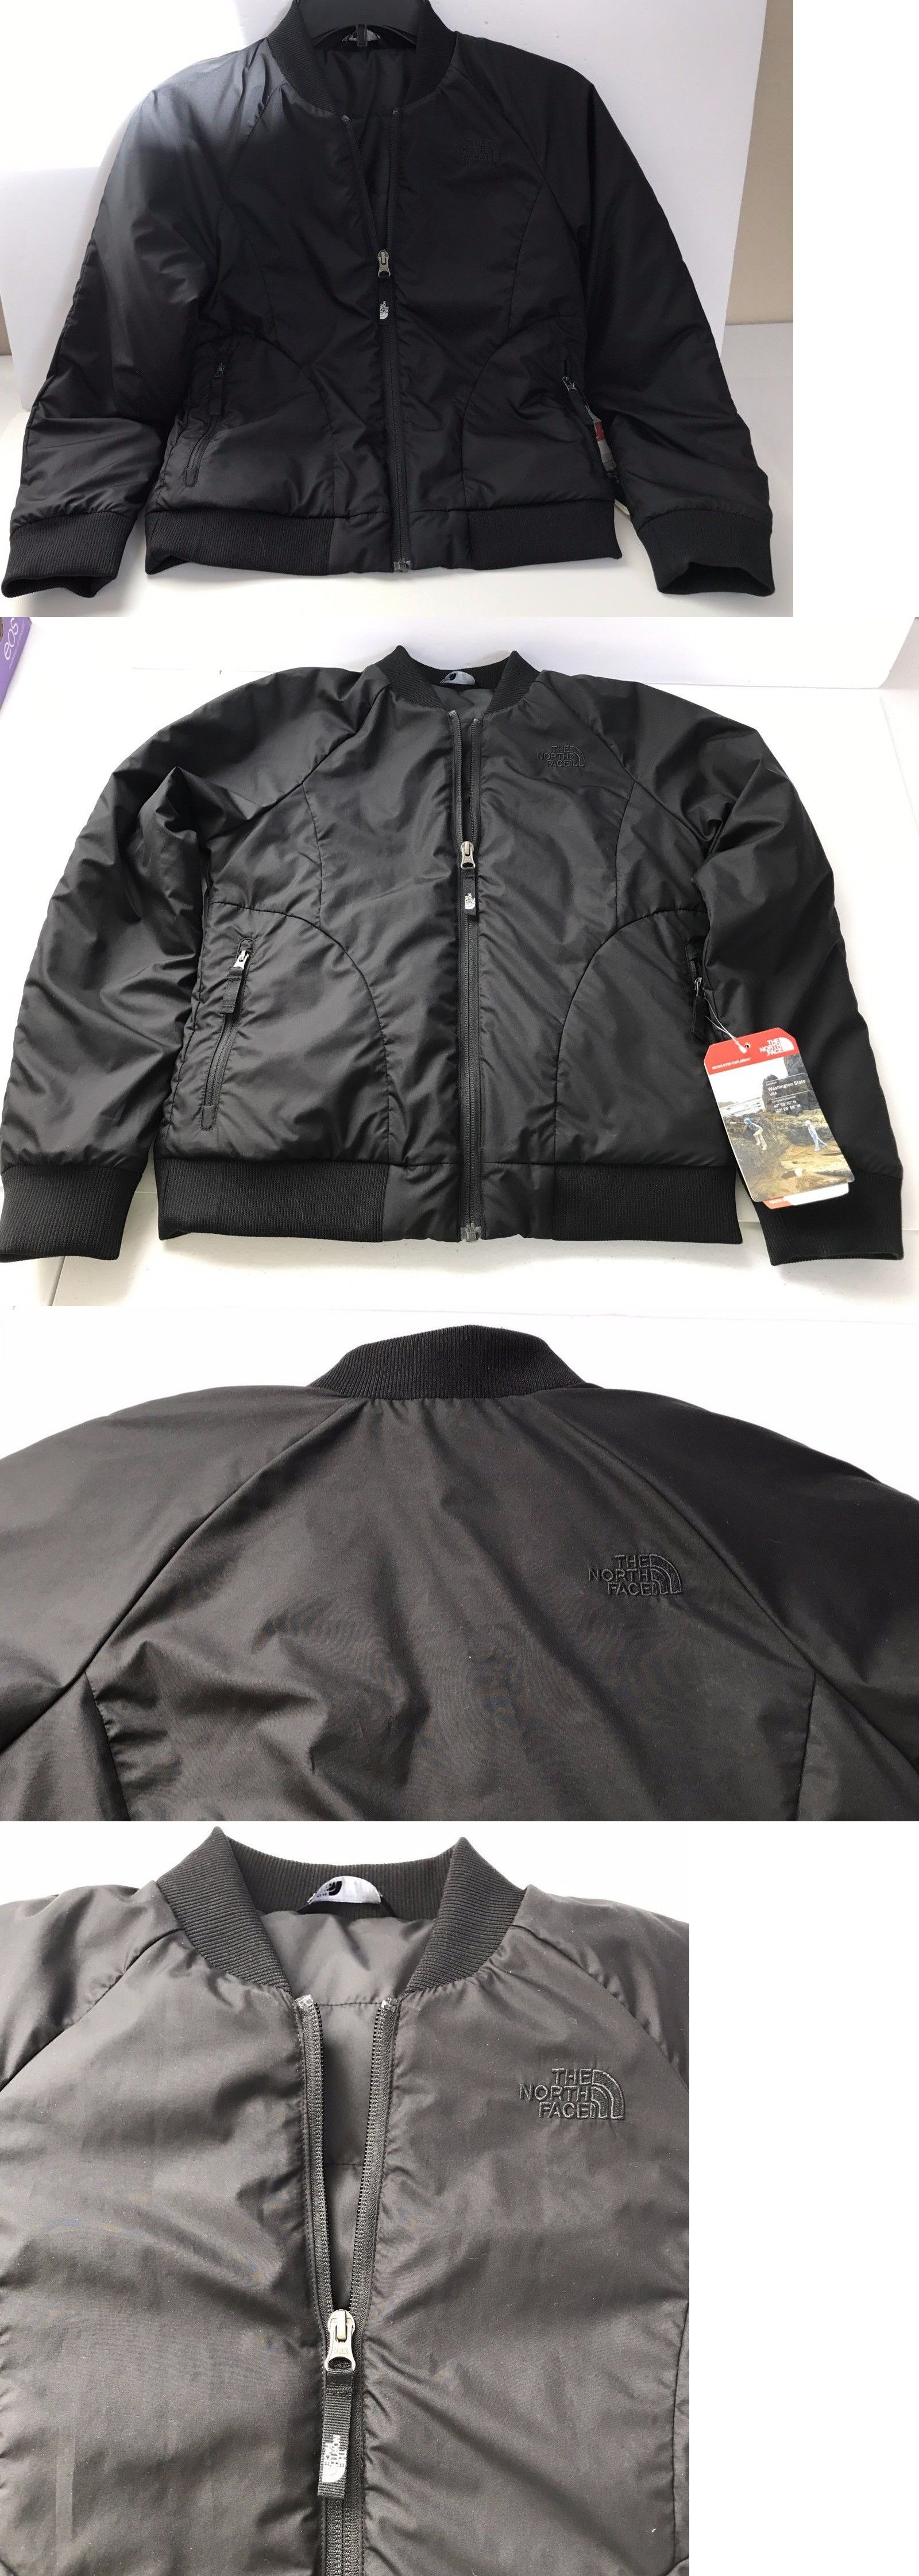 cf33c3d0a Shorts 15648: North Face Water Resistant Rydell Bomber Jacket Black ...